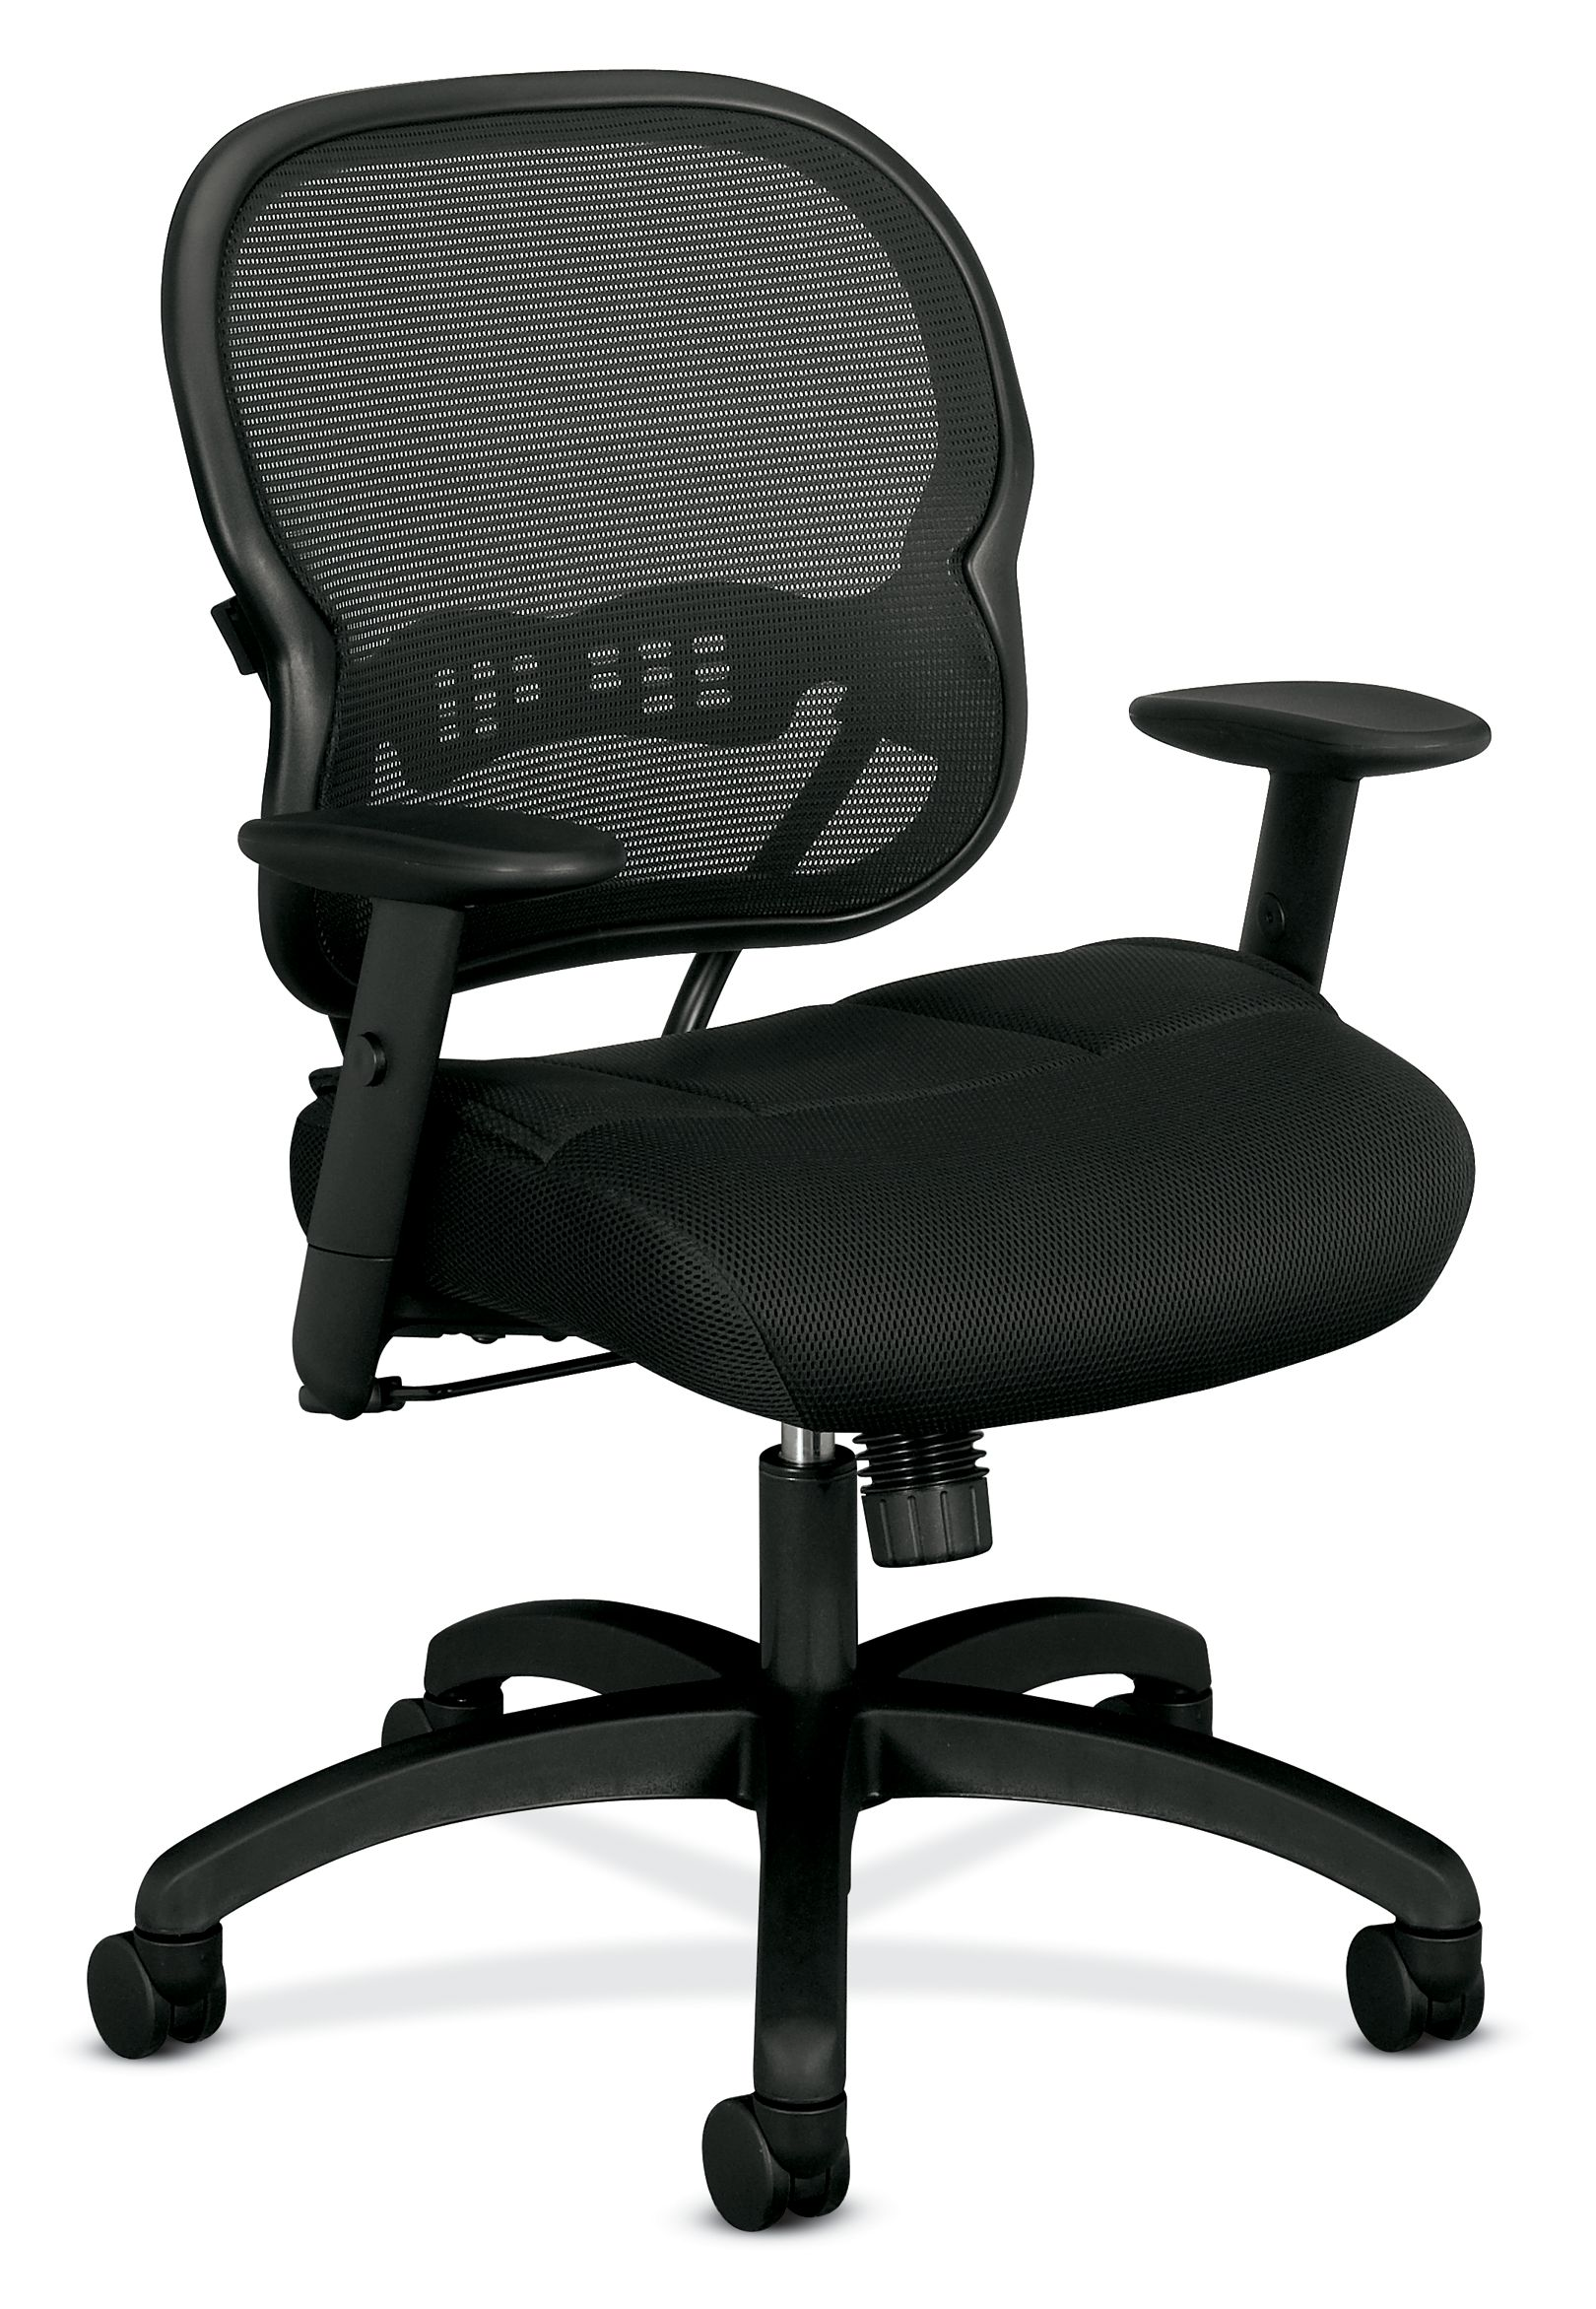 Terrific Hon Wave Mid Back Chair Mesh Office Or Computer Chair With Adjustable Arms Black Vl712 Home Interior And Landscaping Transignezvosmurscom